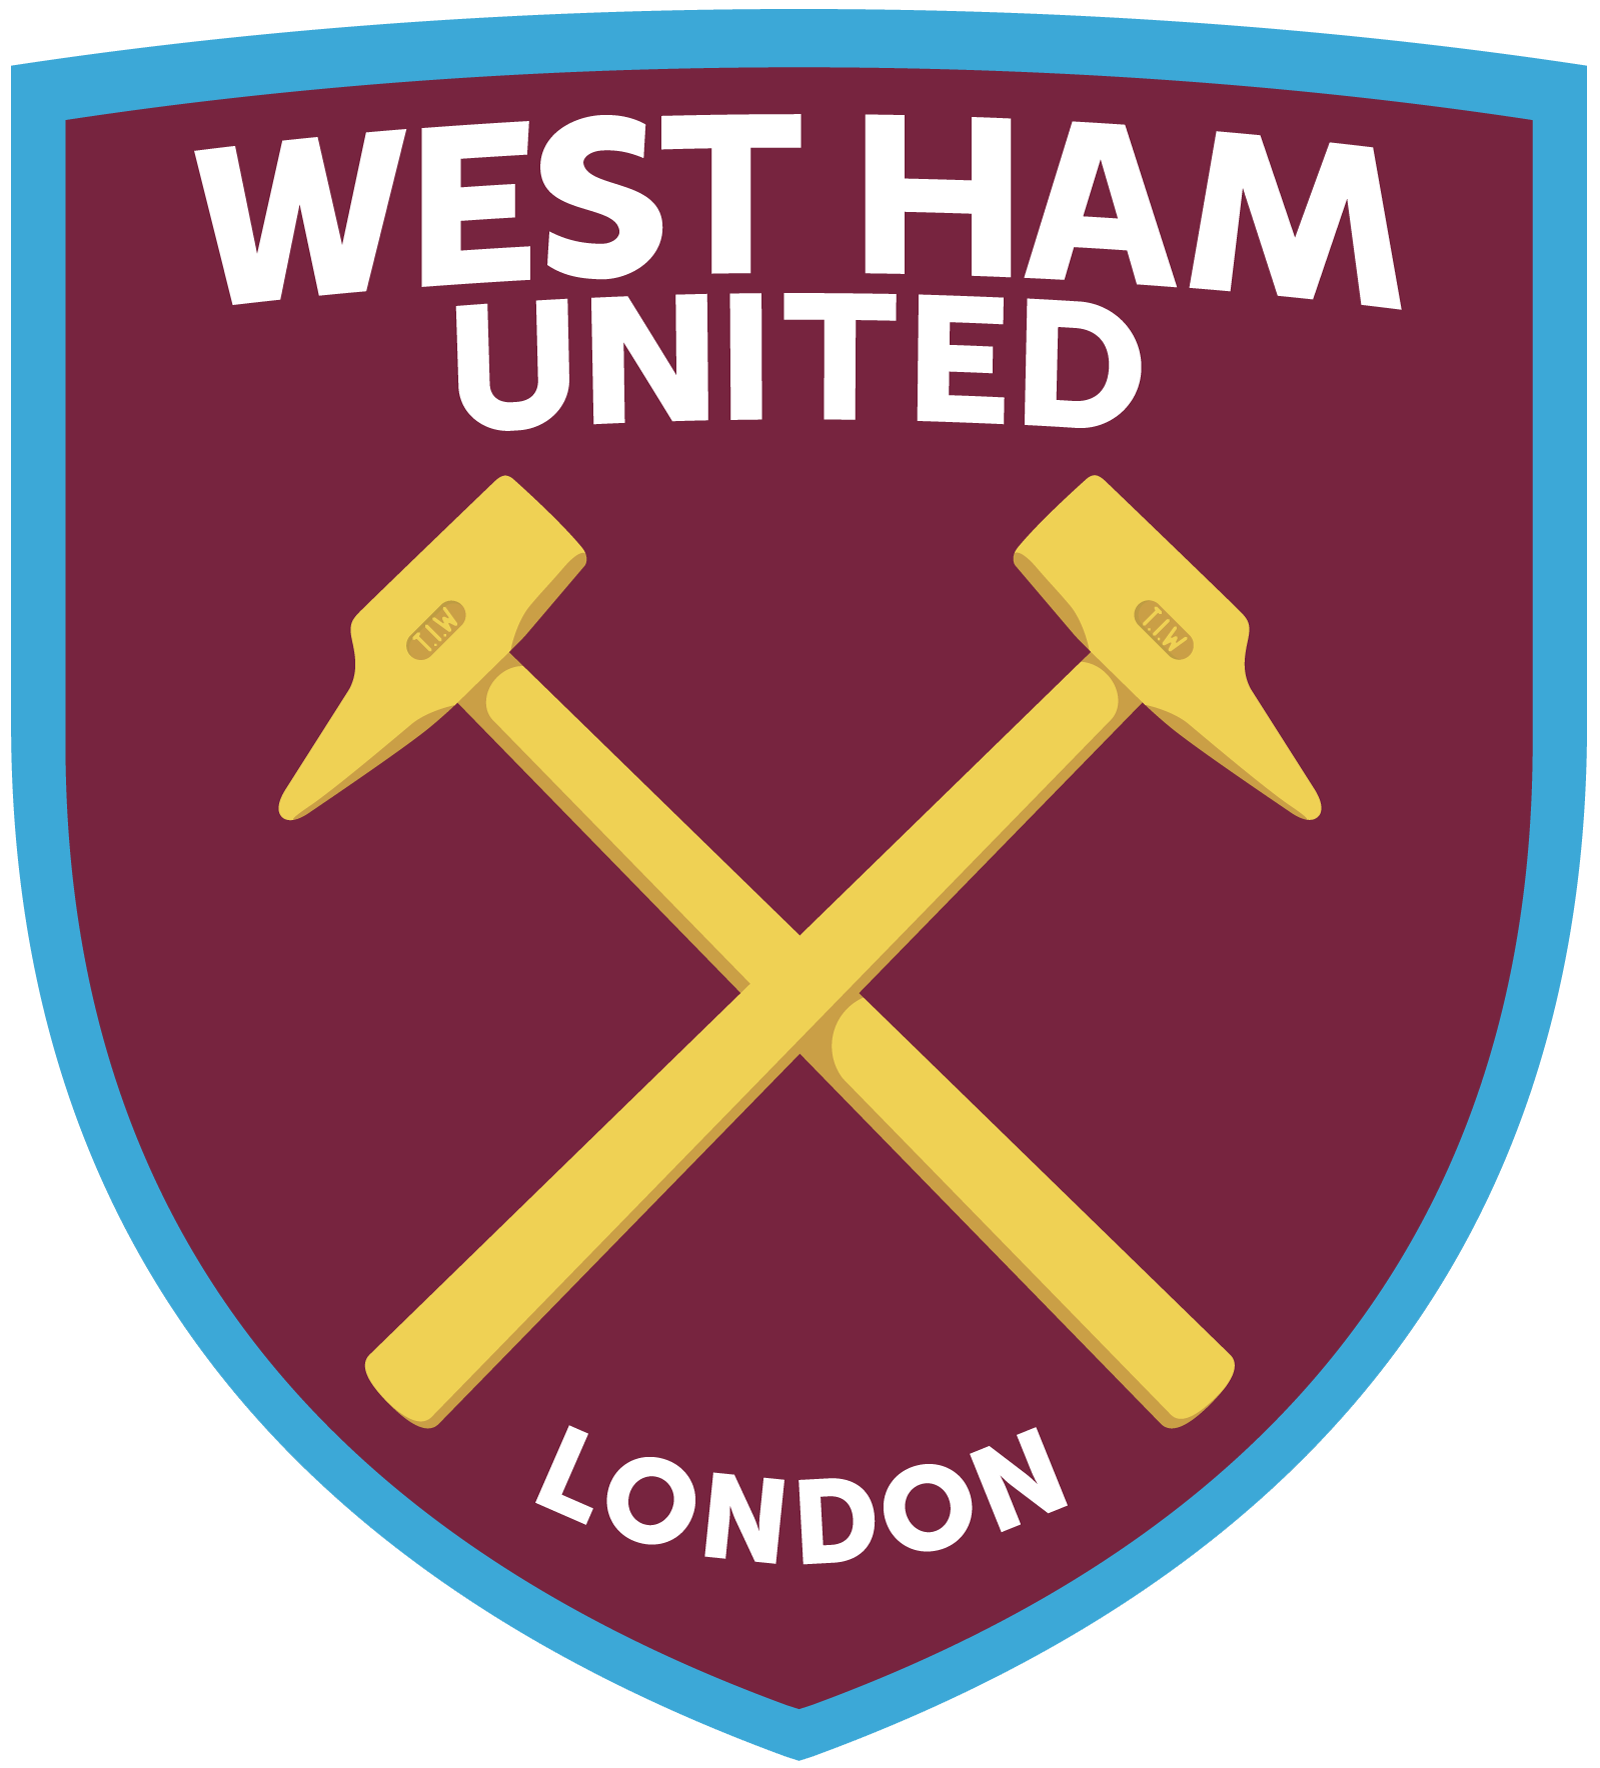 west ham united logo 2 - West Ham United FC Logo